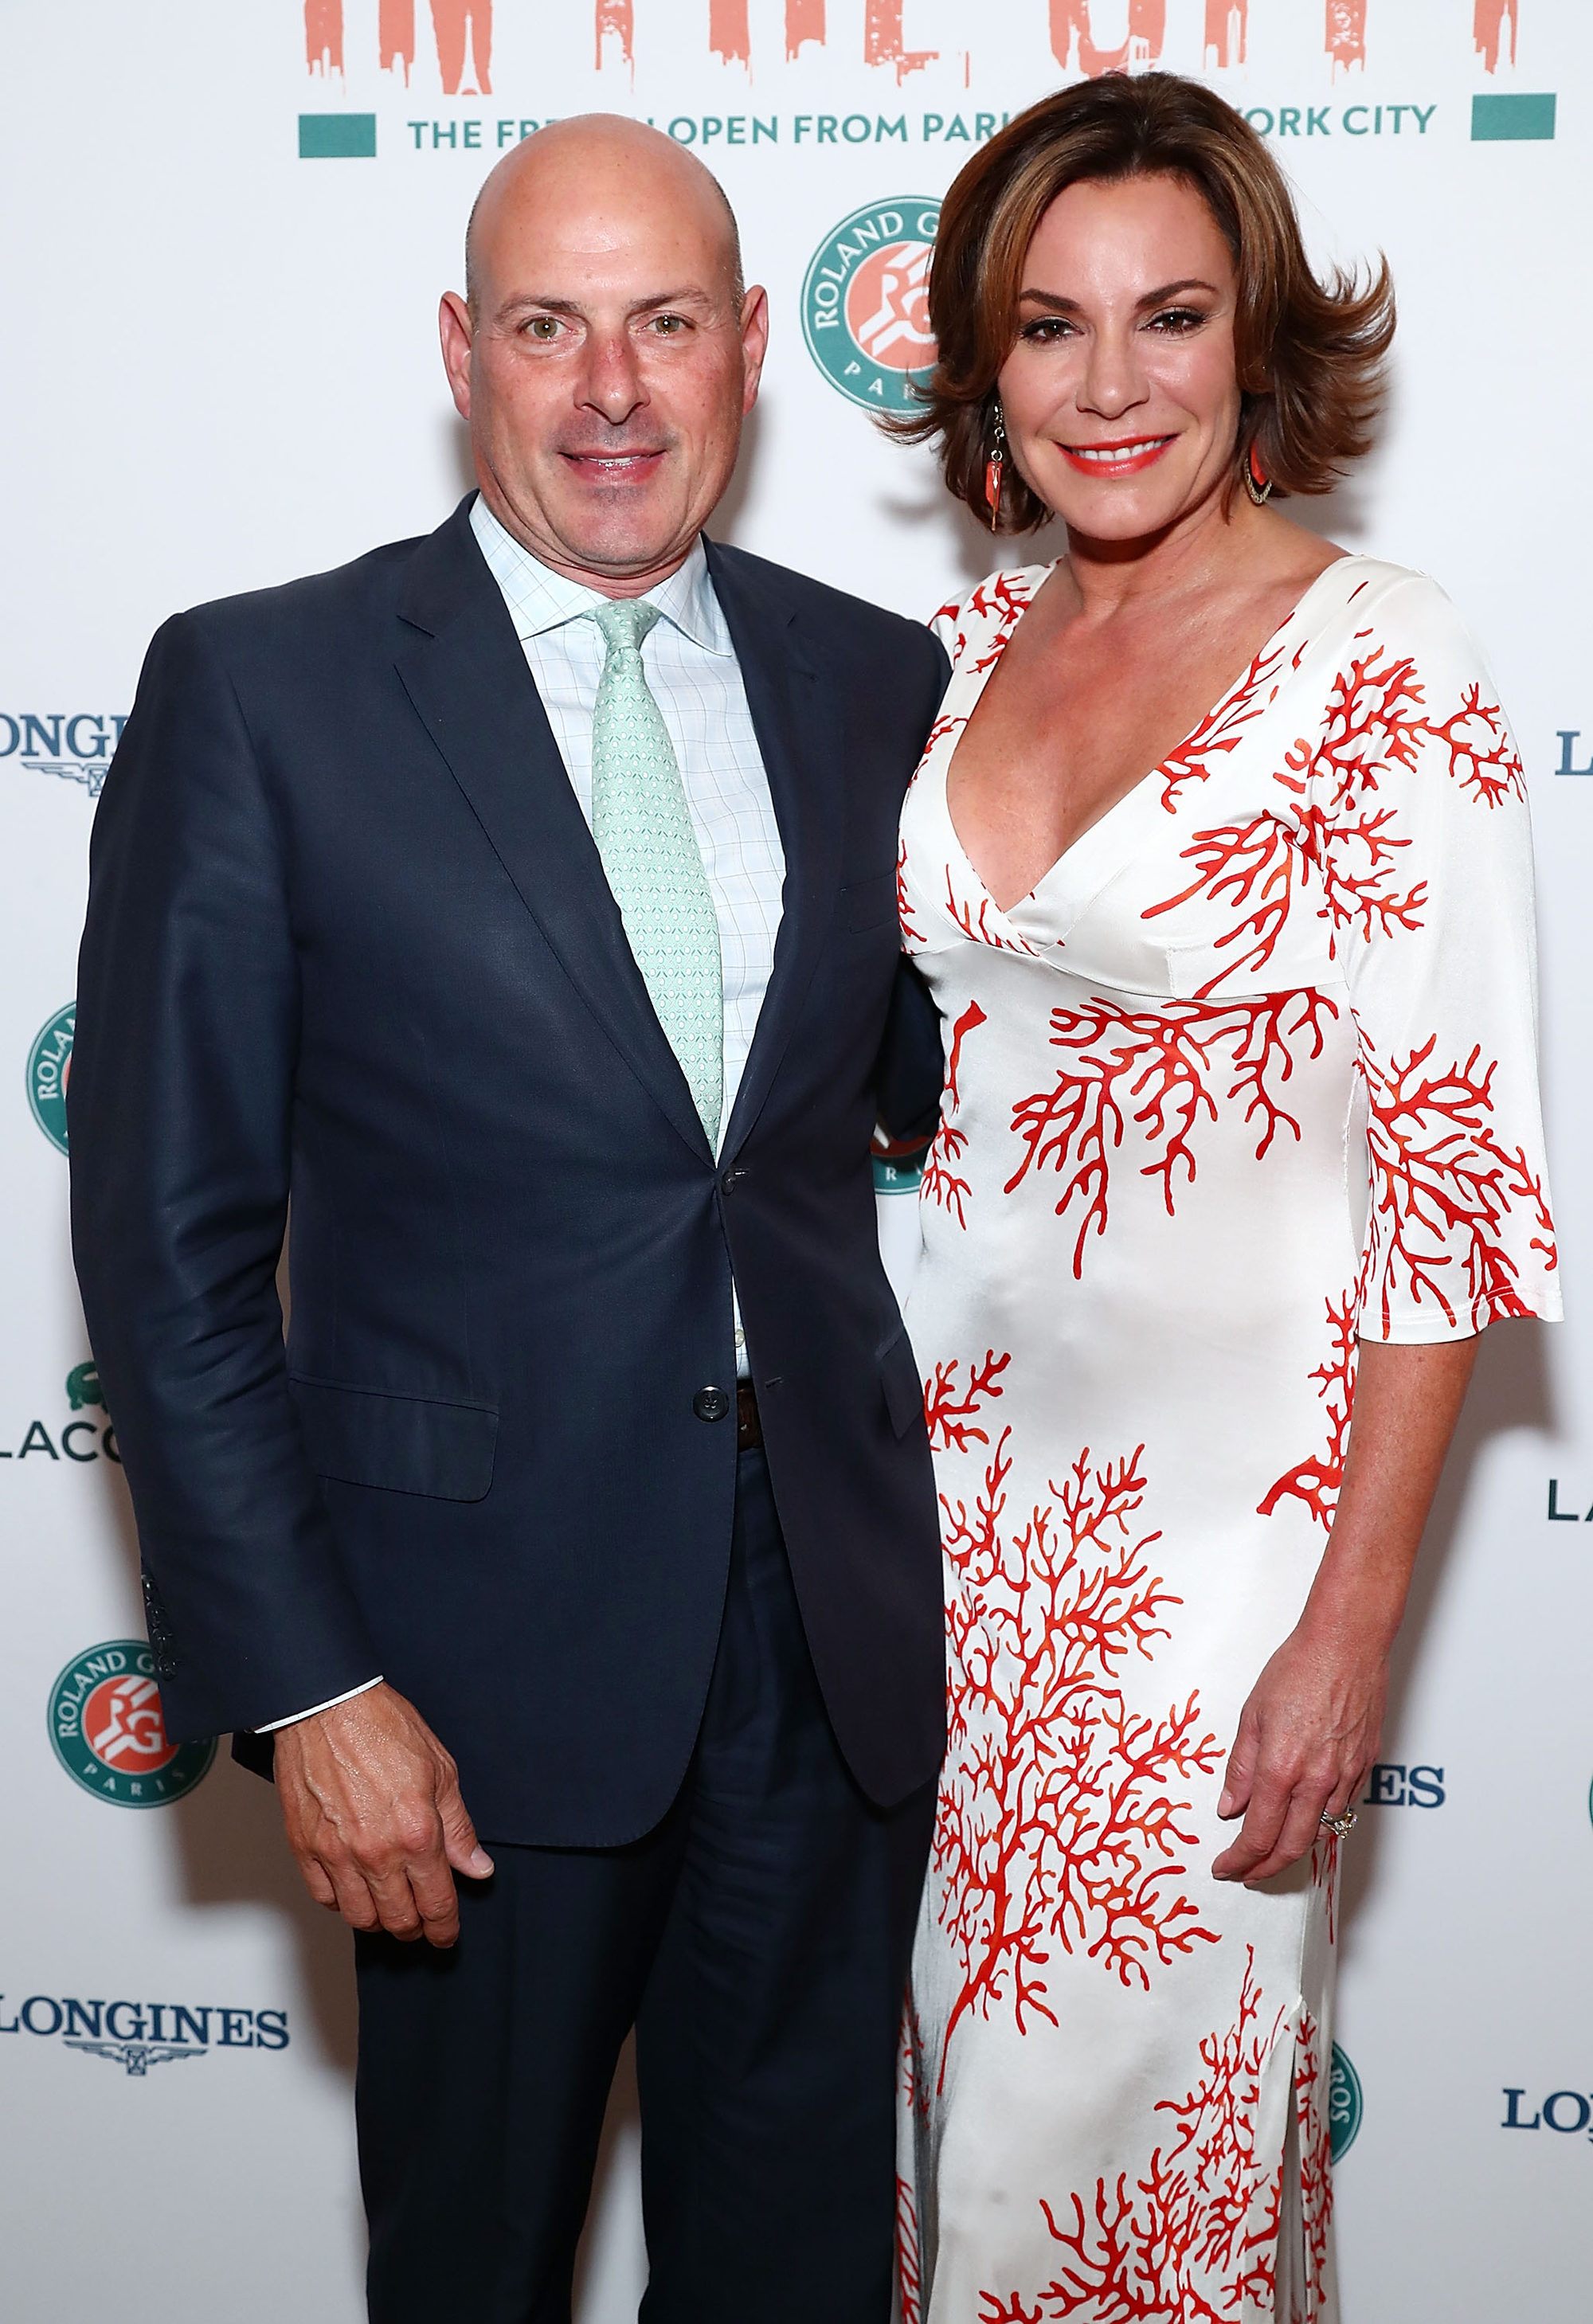 Hollywoods shortest marriages - Short-lived love. The Real Housewives of New York City star and the businessman announced they were divorcing in August 2017 after seven months of marriage.